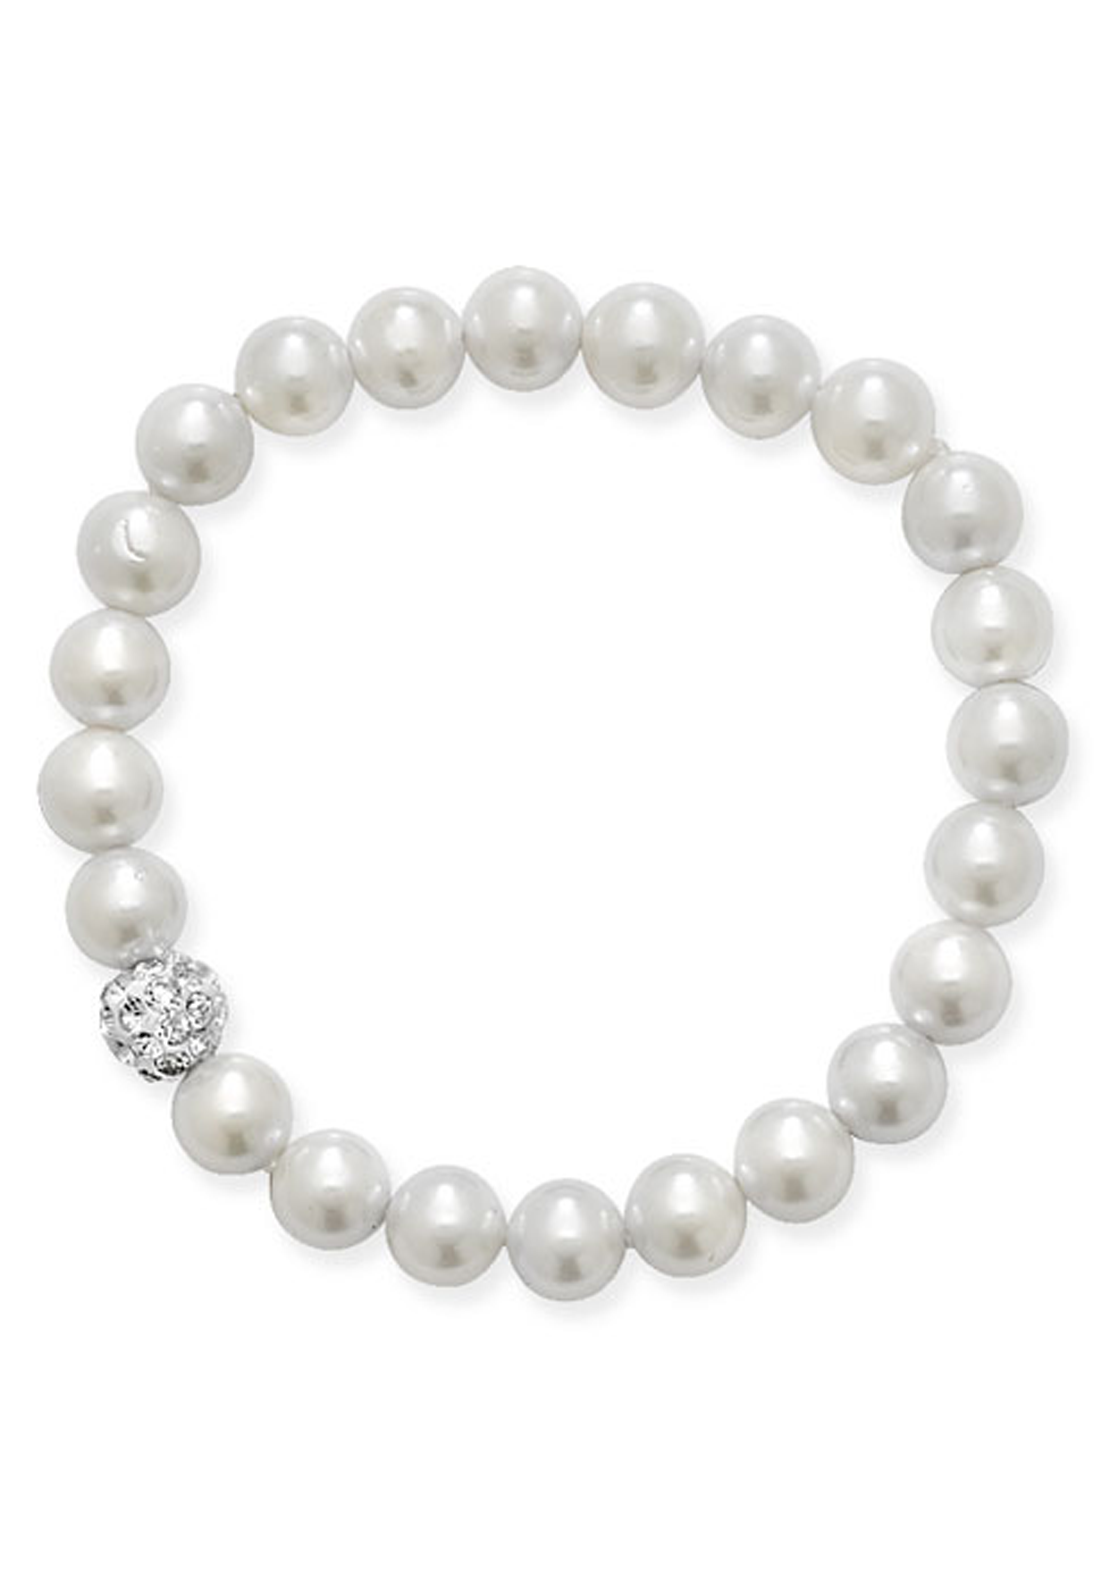 Girls Stretchy Pearl Bracelet with One Crystal Ball, Pearl